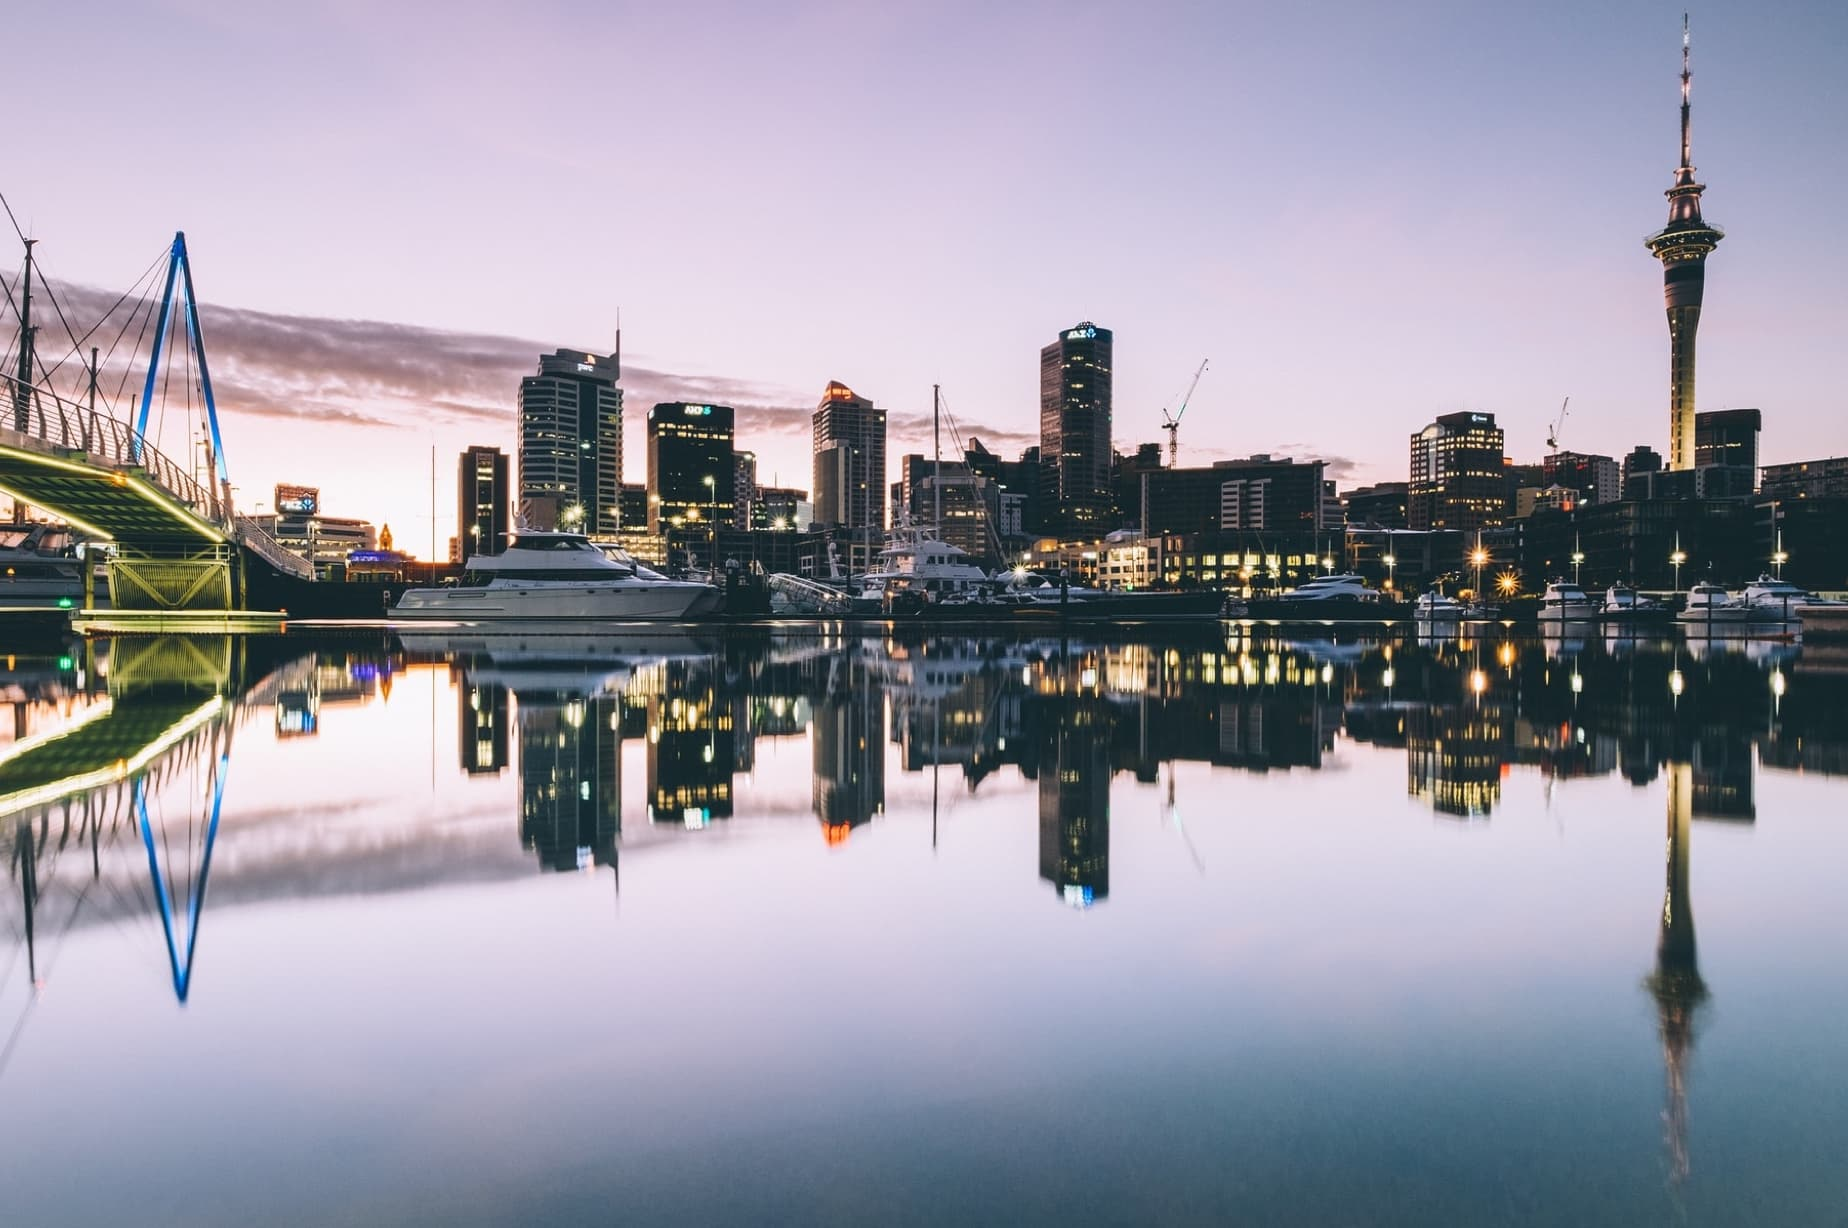 New Zealand City Skyline algong with it's complete reflection on the water